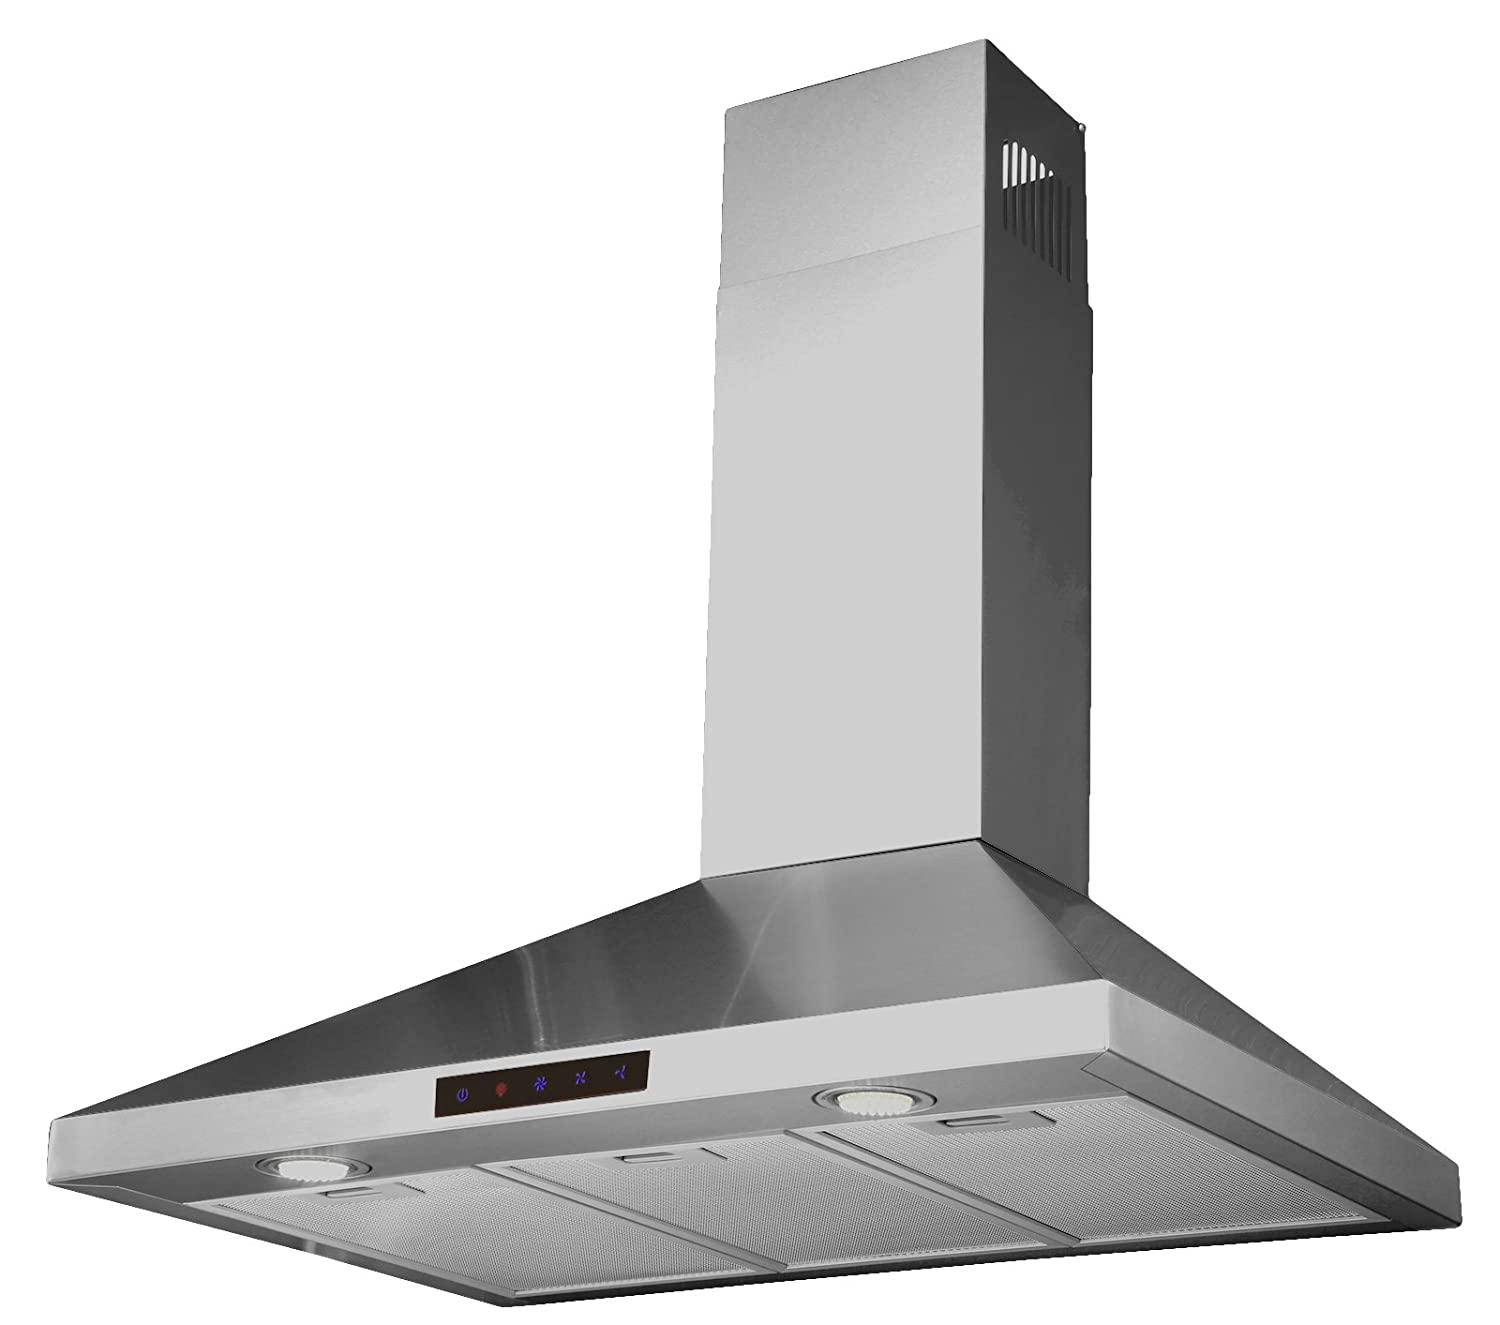 hood delightful interior hoods regarding kitchen incredible oxkl plan cooker on impressive best exquisite extractor black elegant